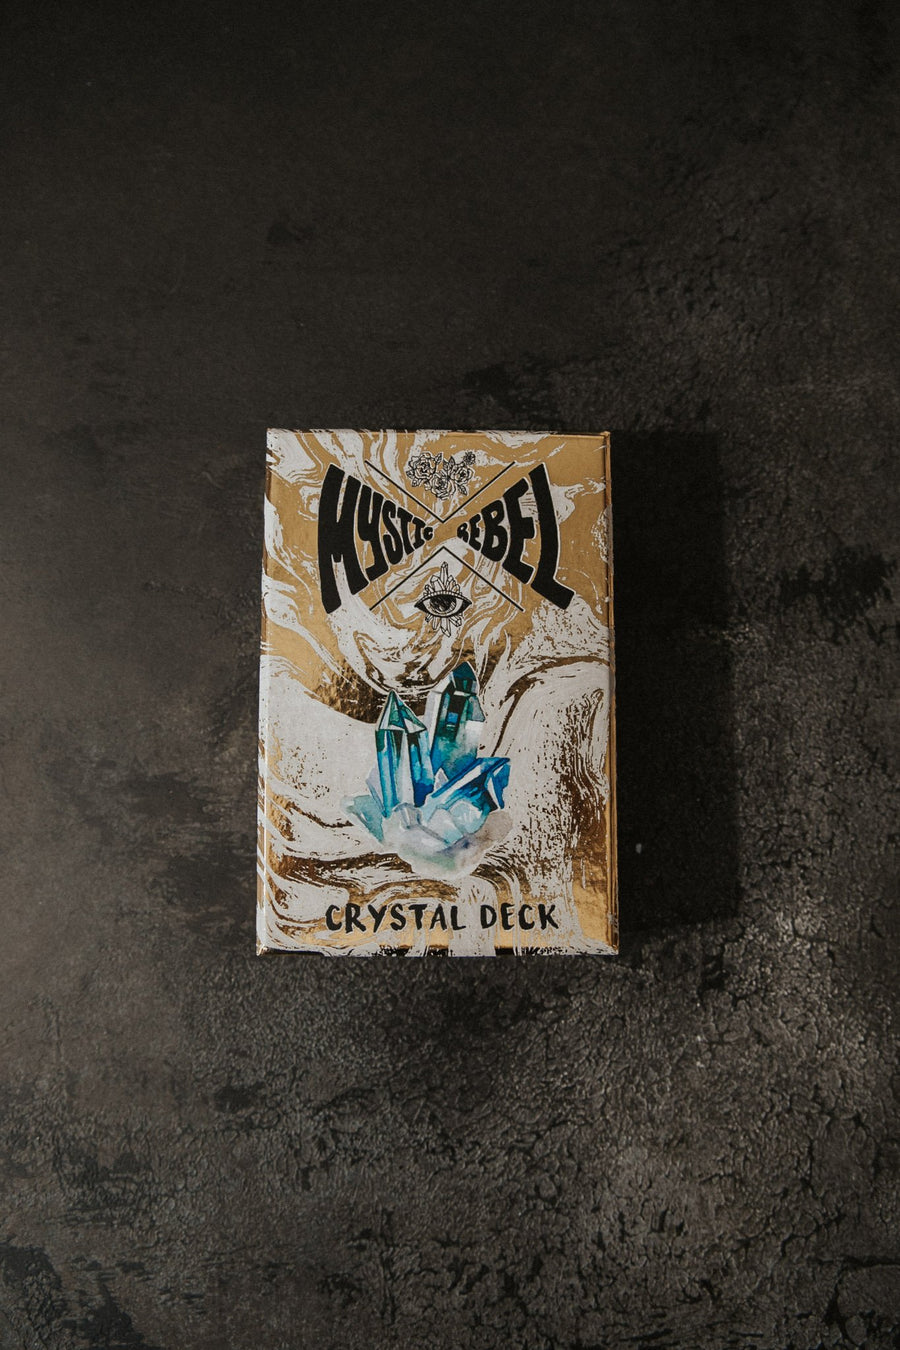 Mystic Rebel Objects Gold / FINAL SALE Mystic Rebel Crystal Deck